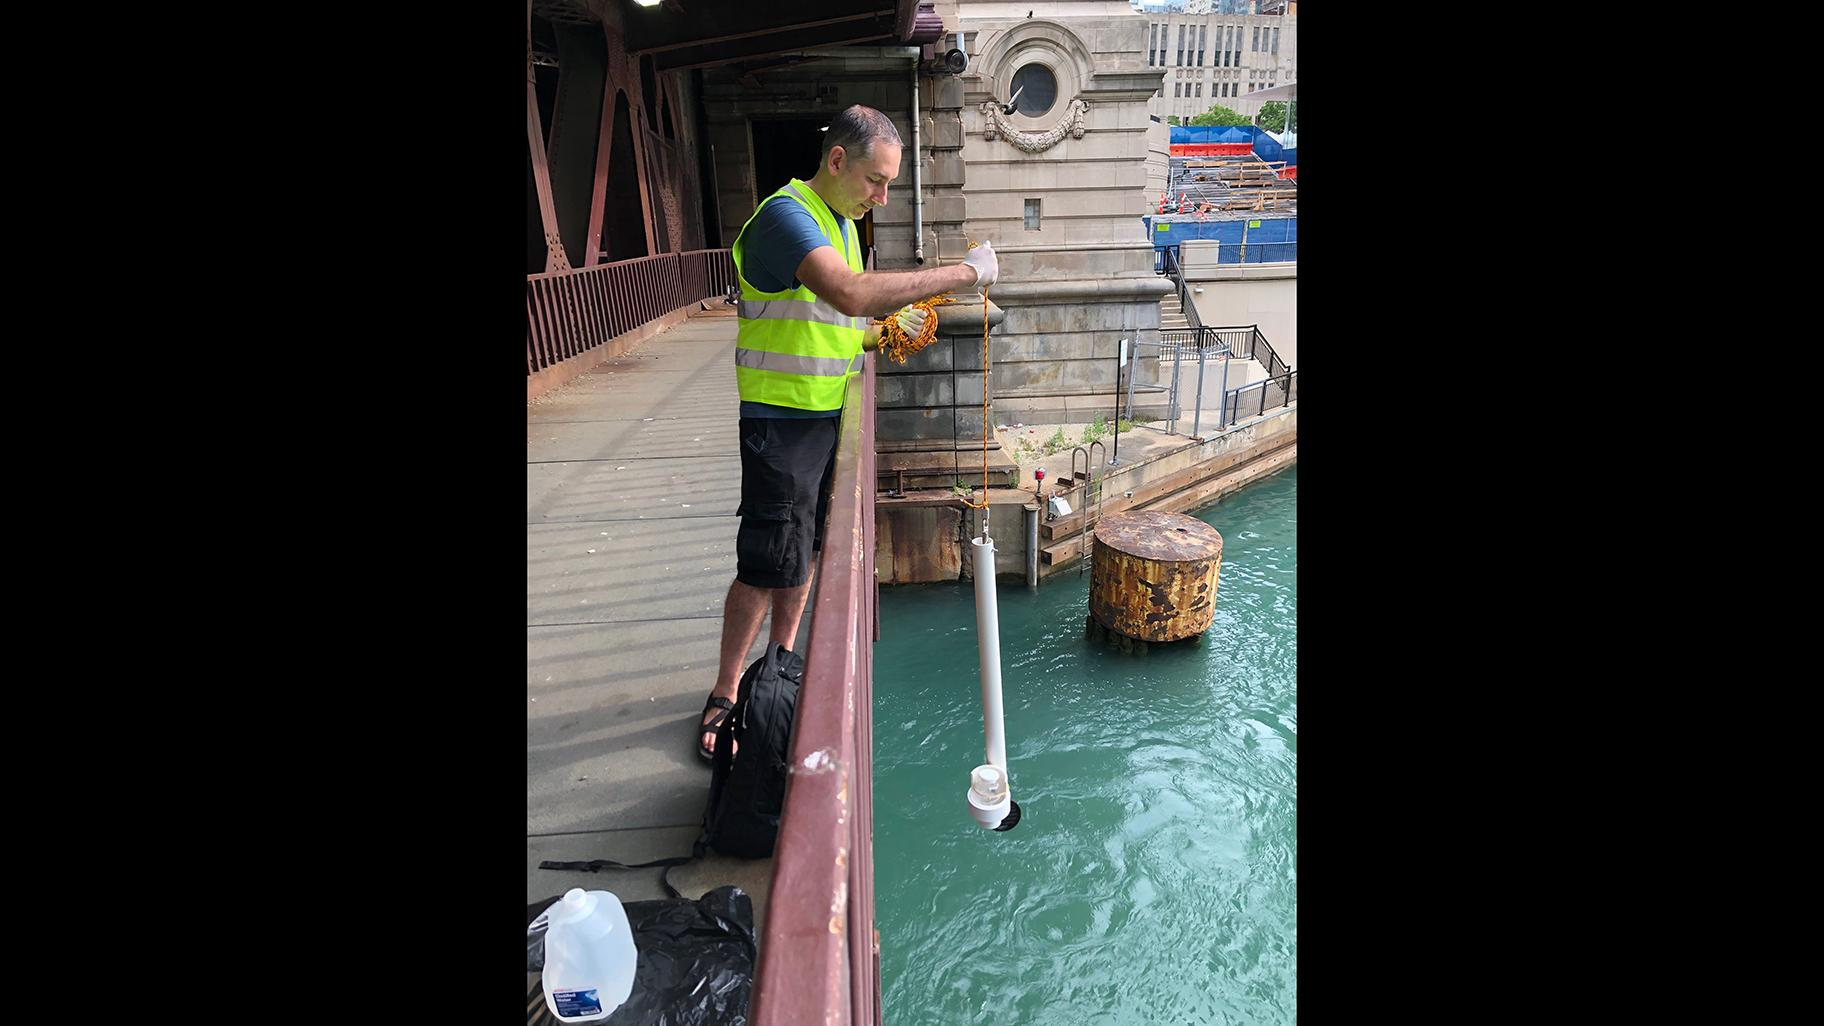 Steve Frenkel, Current's executive director, conducts water sampling in the Chicago River. (Courtesy Current)